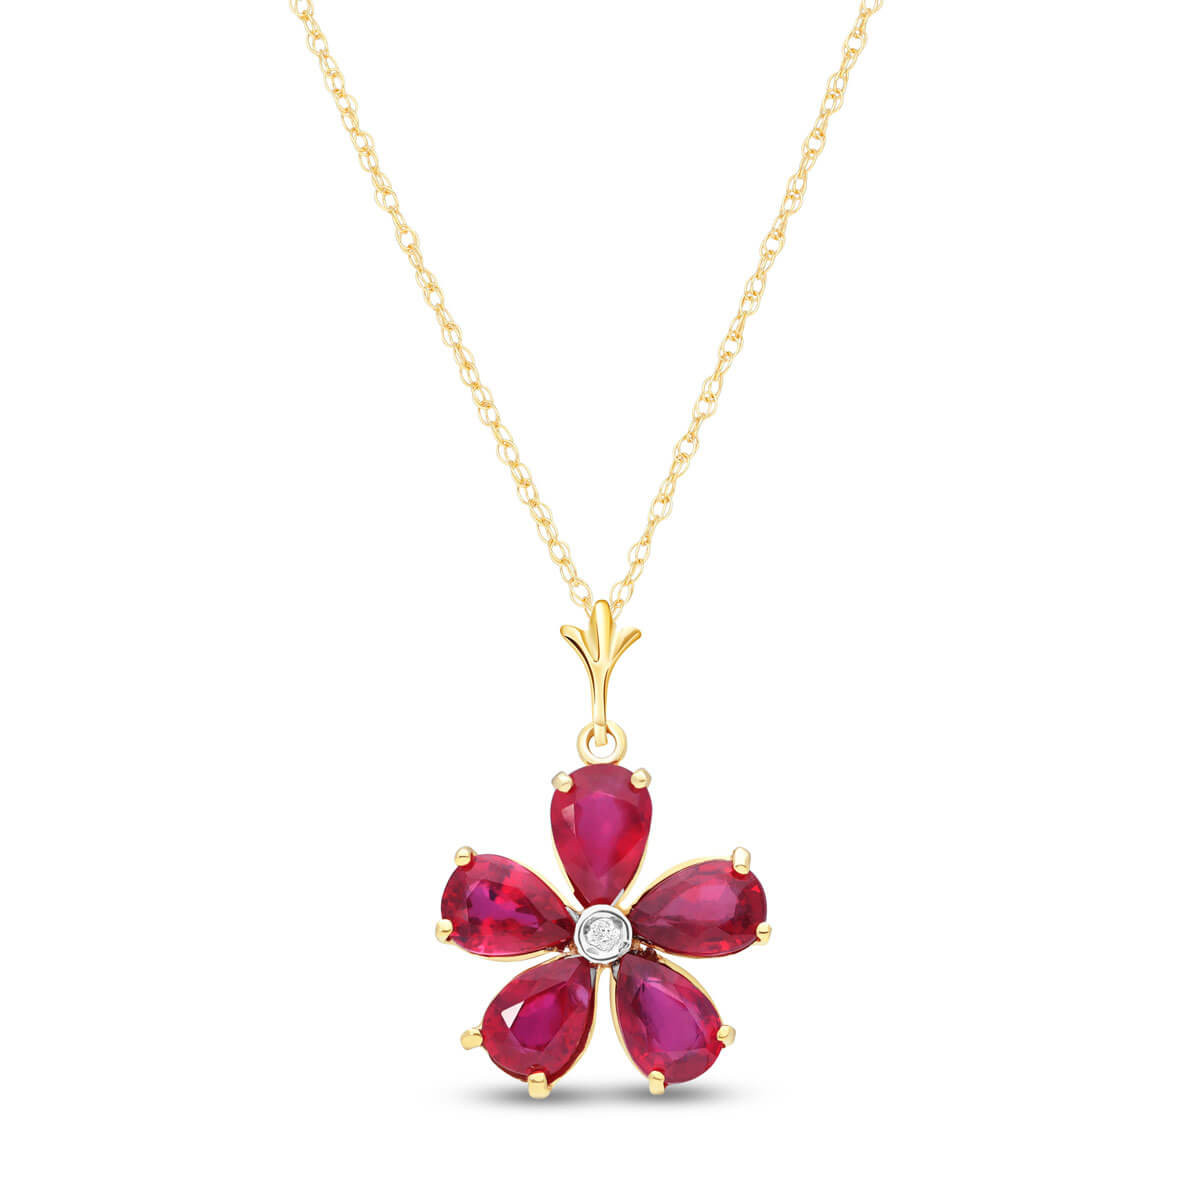 Ruby & Diamond Flower Petal Pendant Necklace in 9ct Gold